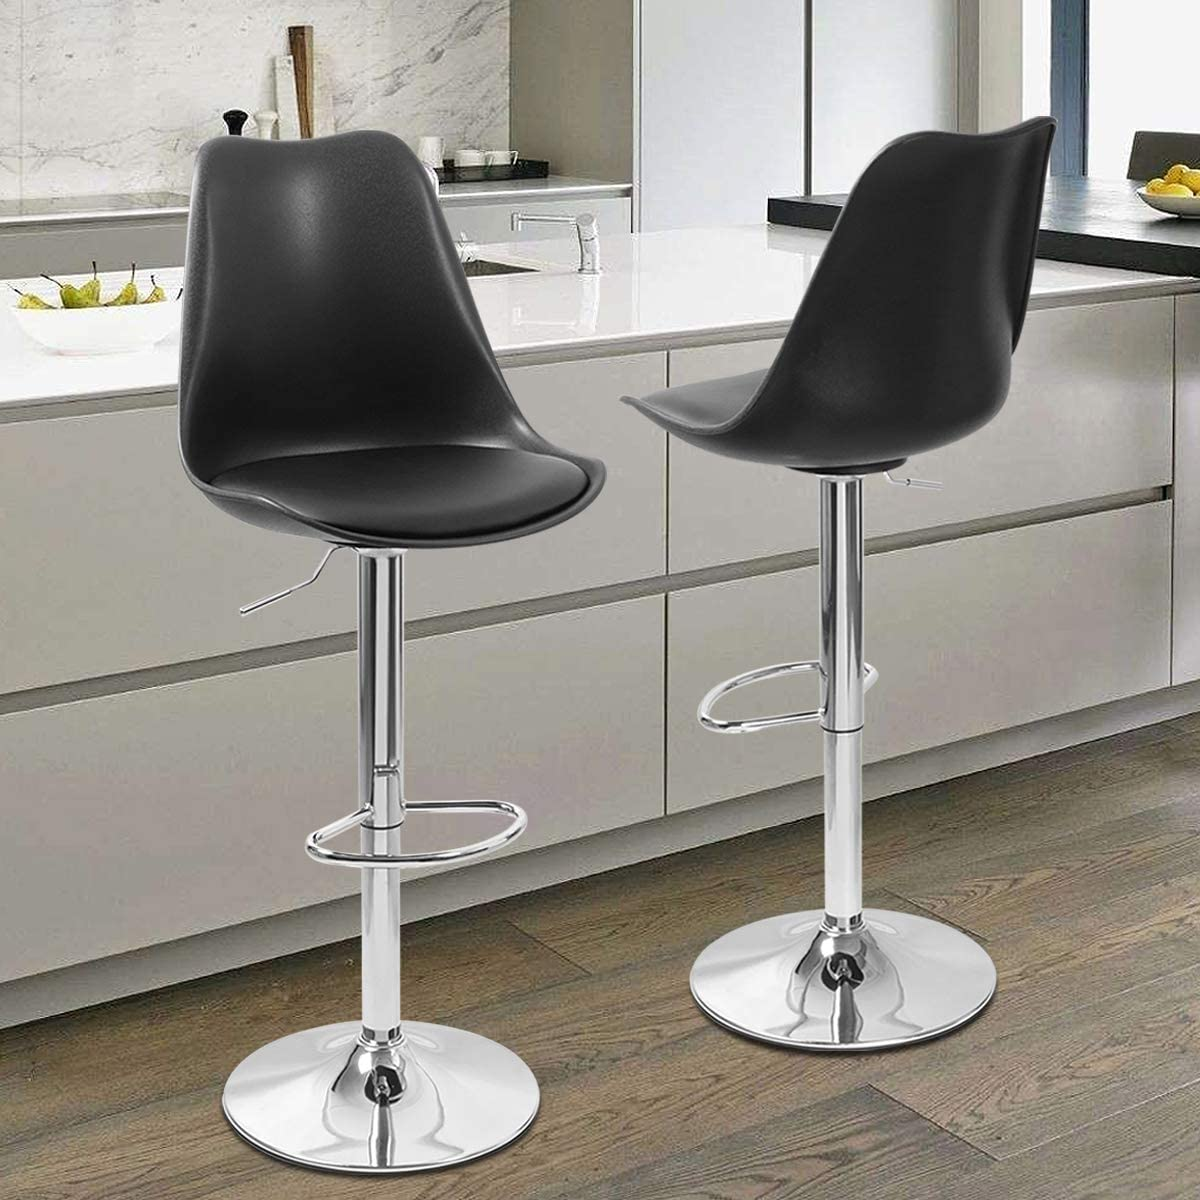 Magshion Mixed Color Square Adjustable Height Swivel Bar Stool Lift Pub Chair Plastic-Black